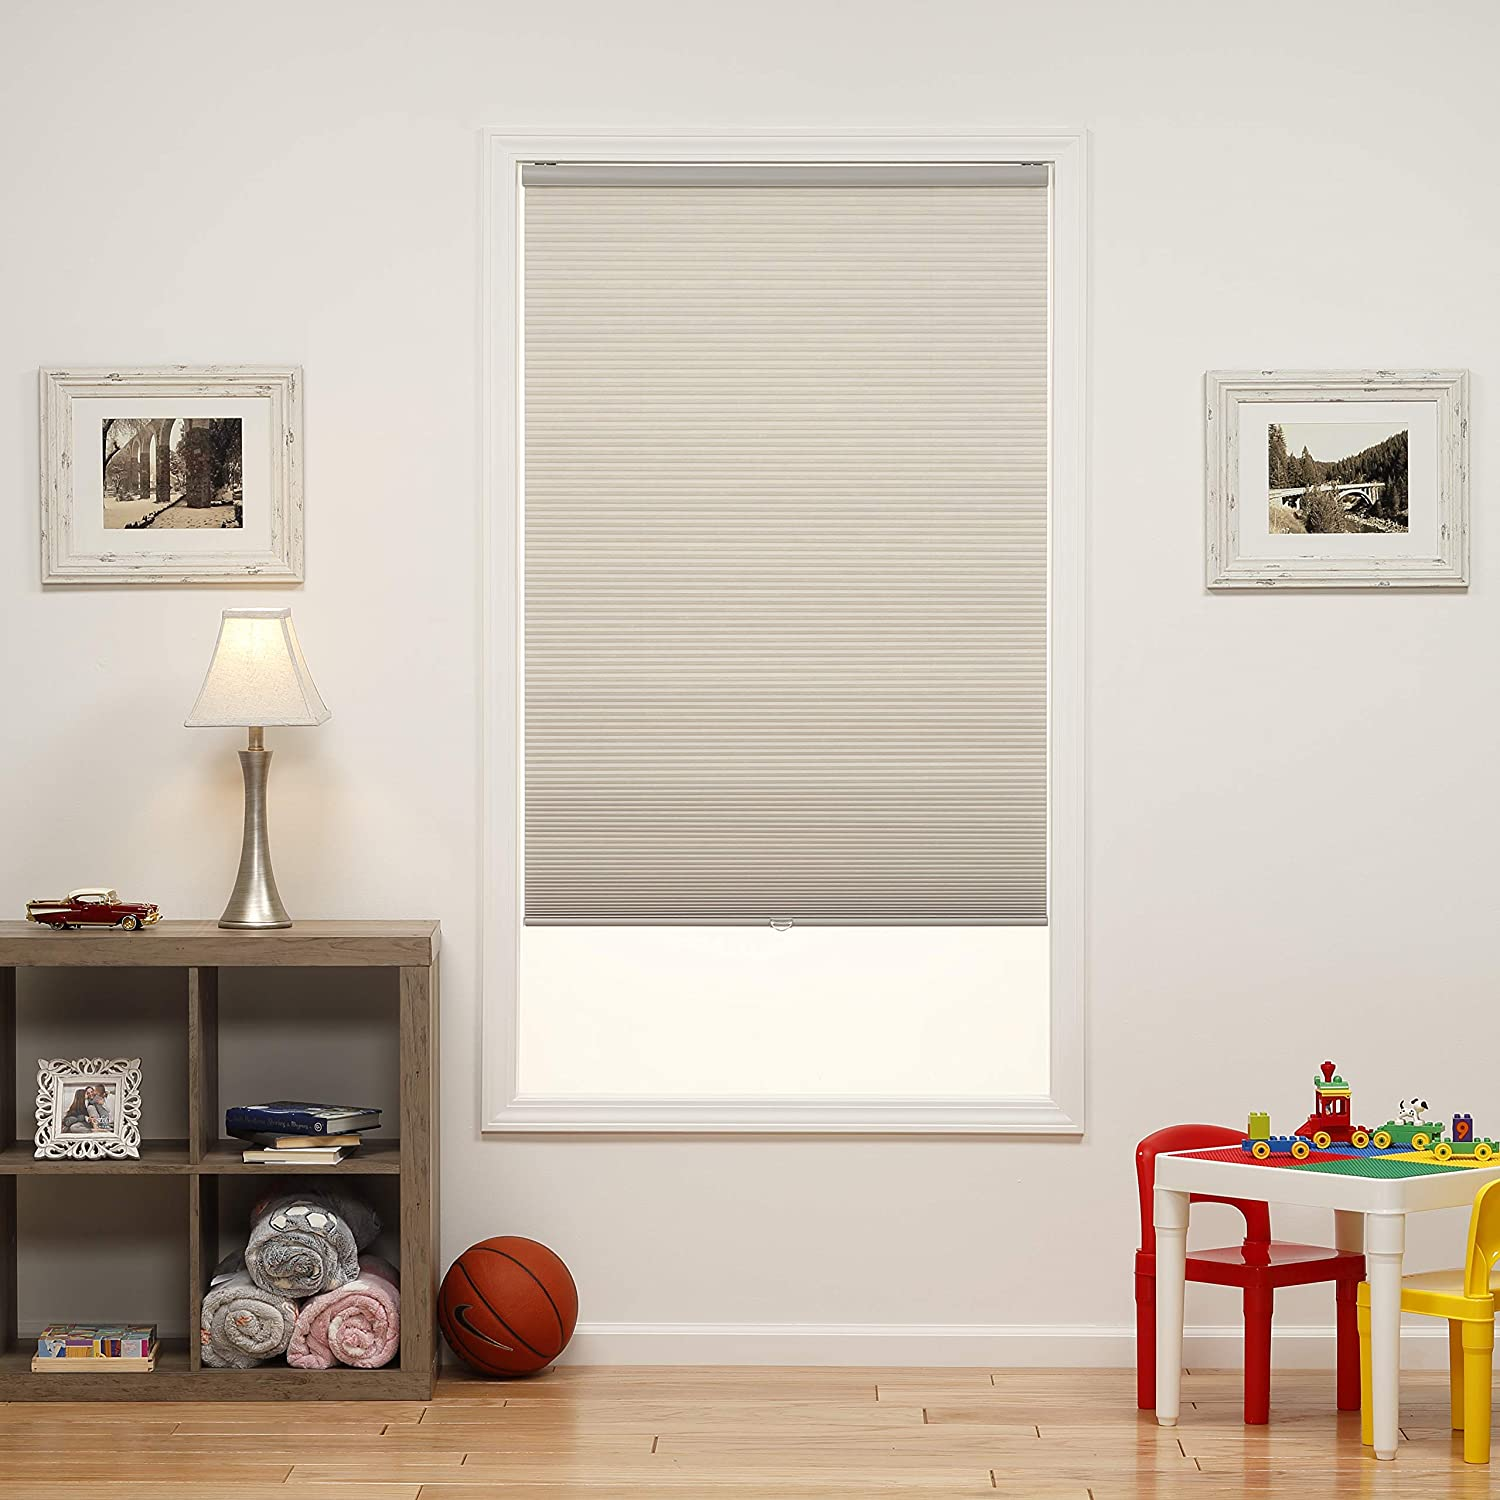 34W x 48H Inches Gray Cloud DEZ Furnishings QCLG340480 Cordless Light Filtering Cellular Shade